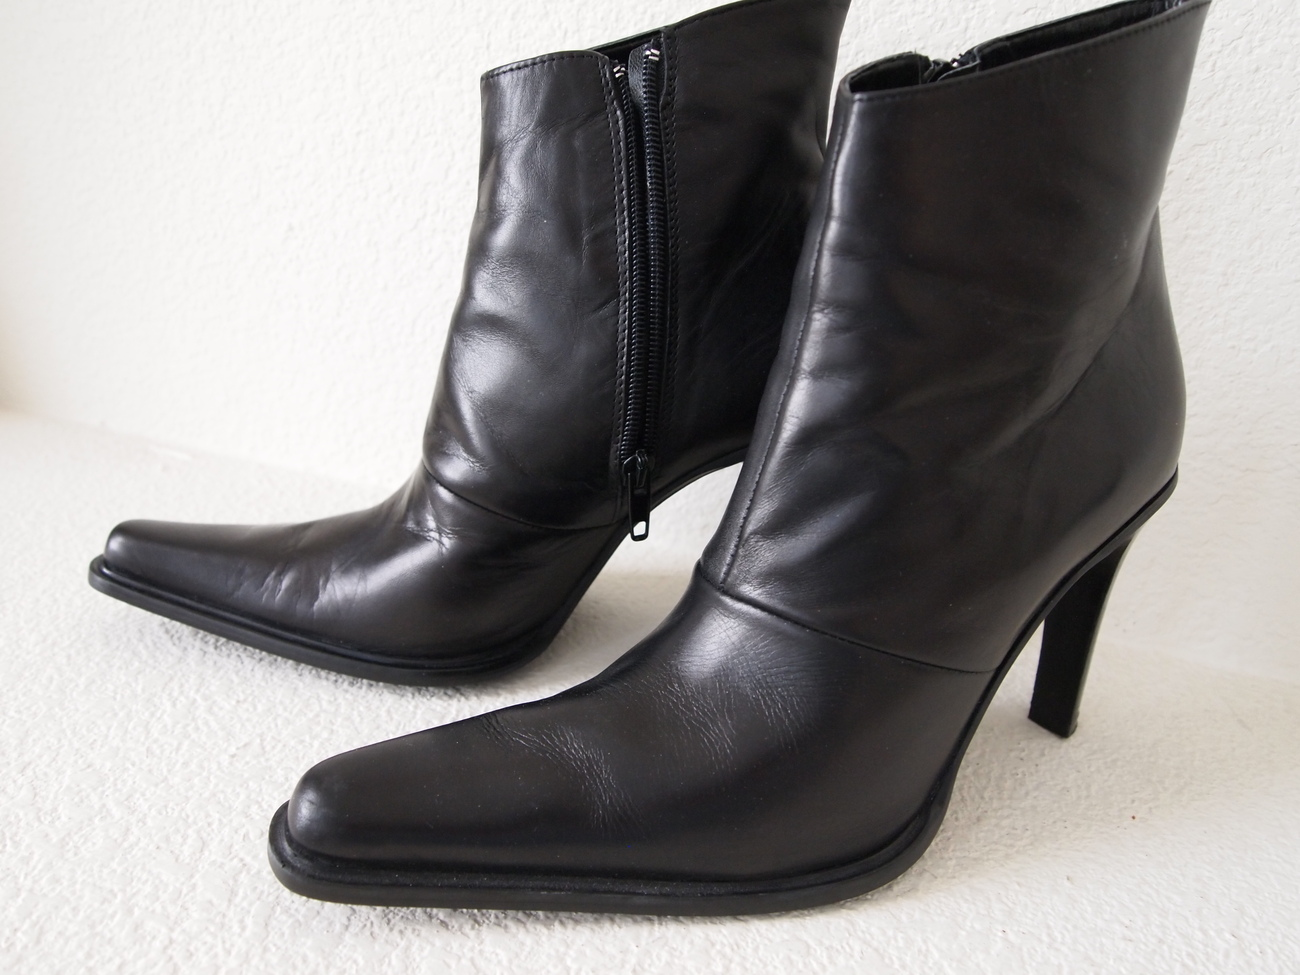 Benetton Black Leather Ankle Boots 38 M